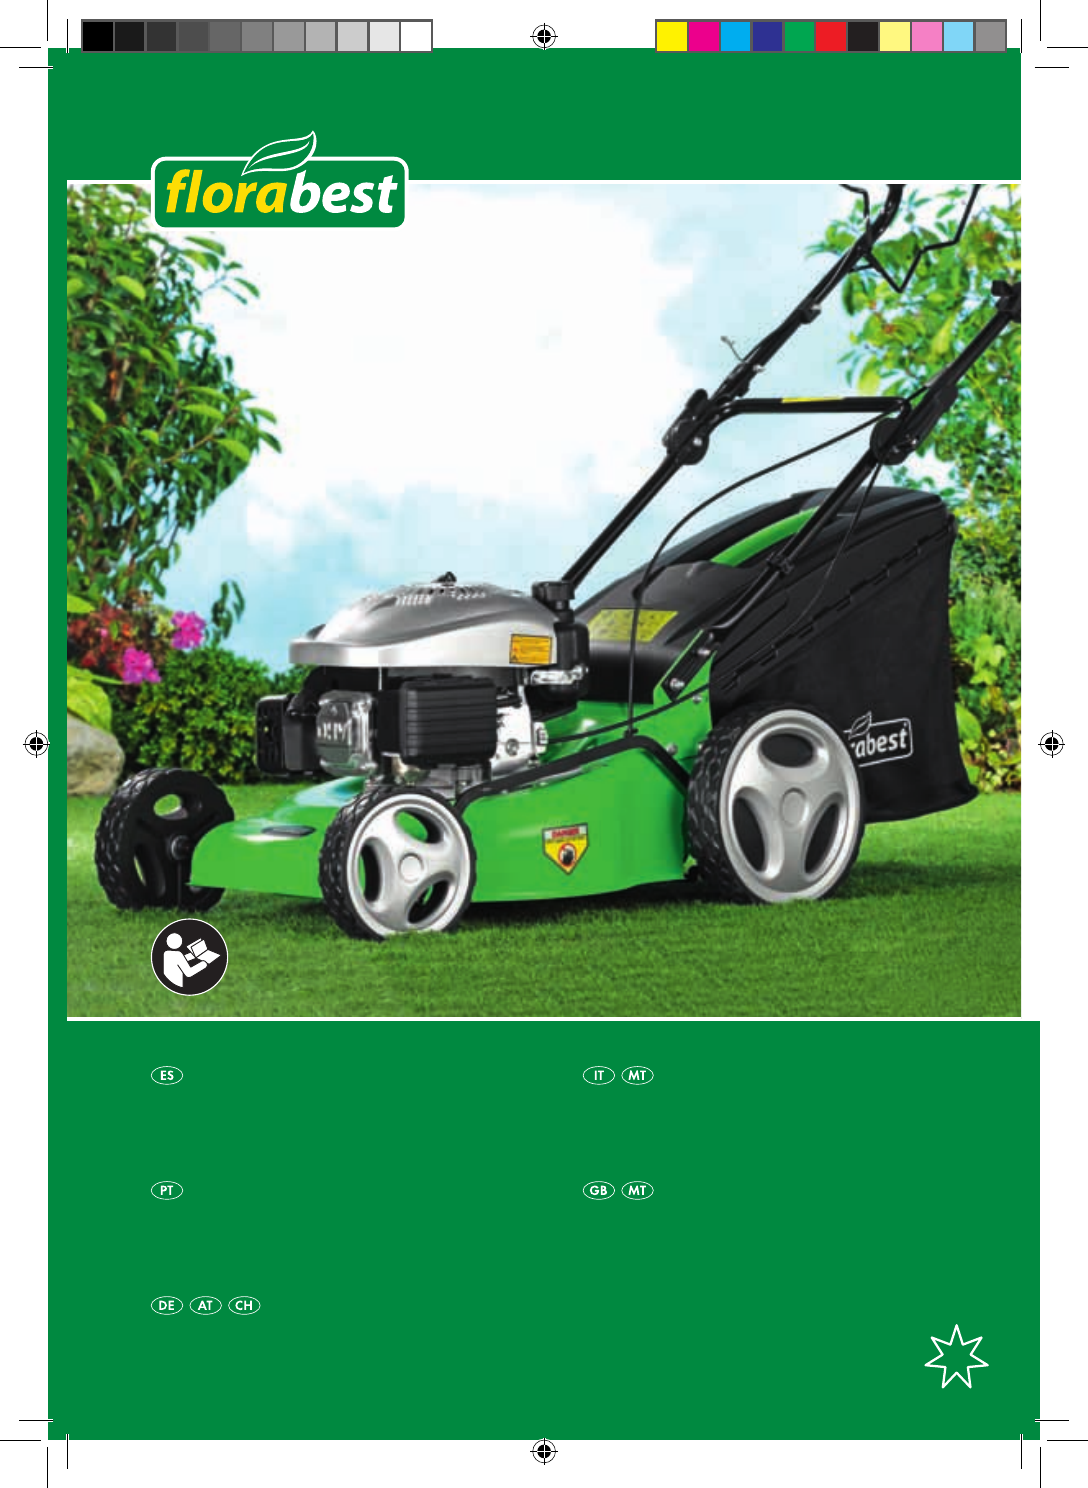 florabest fbm 135 a1 user manual 100 pages rh manualsdir com Manual Lawn Core Aerator Manual Aerator Home Depot